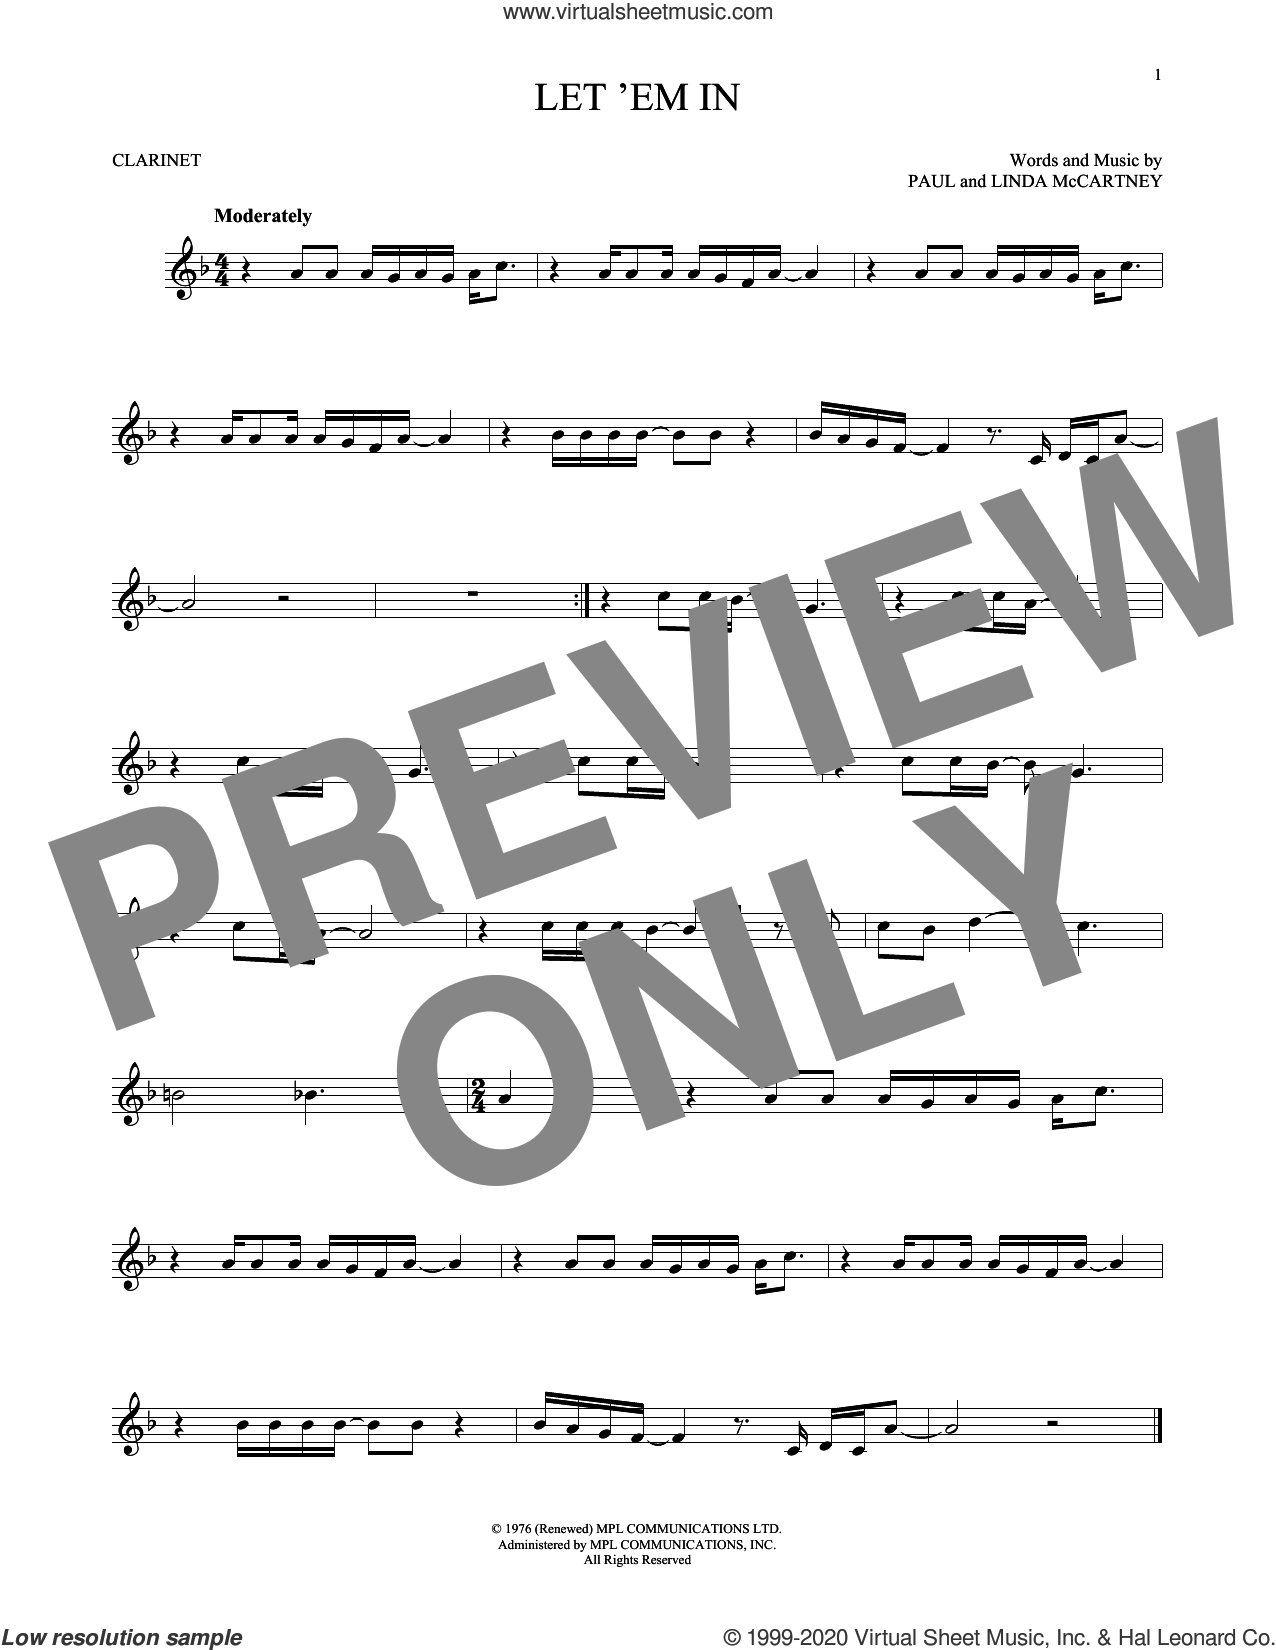 Let 'Em In sheet music for clarinet solo by Wings, Linda McCartney and Paul McCartney, intermediate skill level